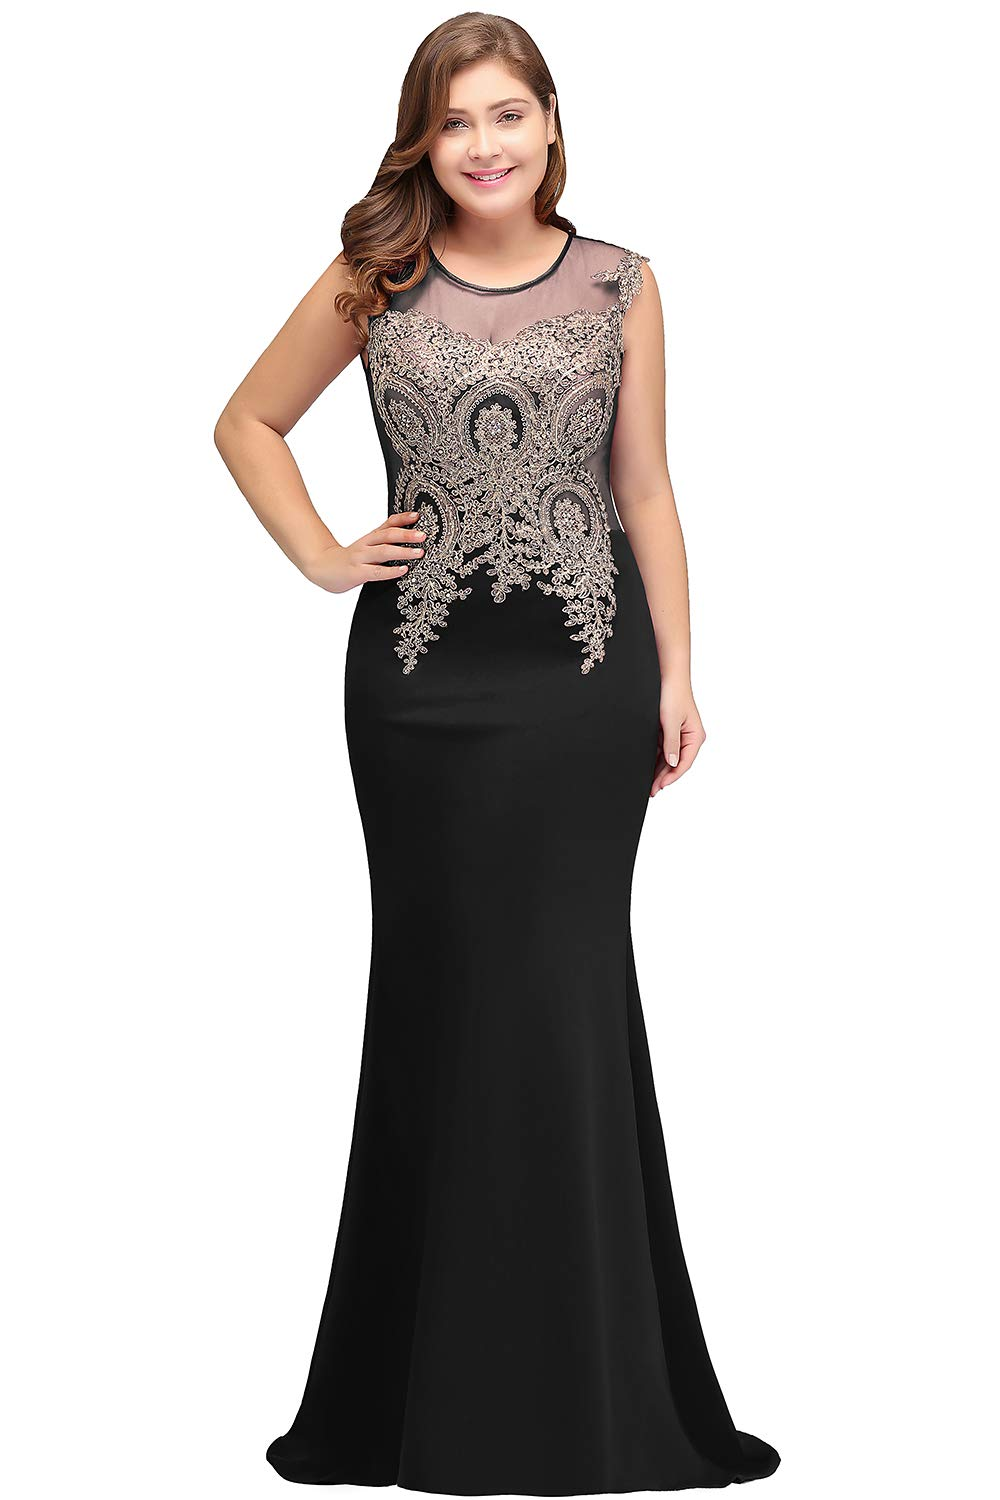 05091110ae1 Burgundy Plus Size Evening Dress